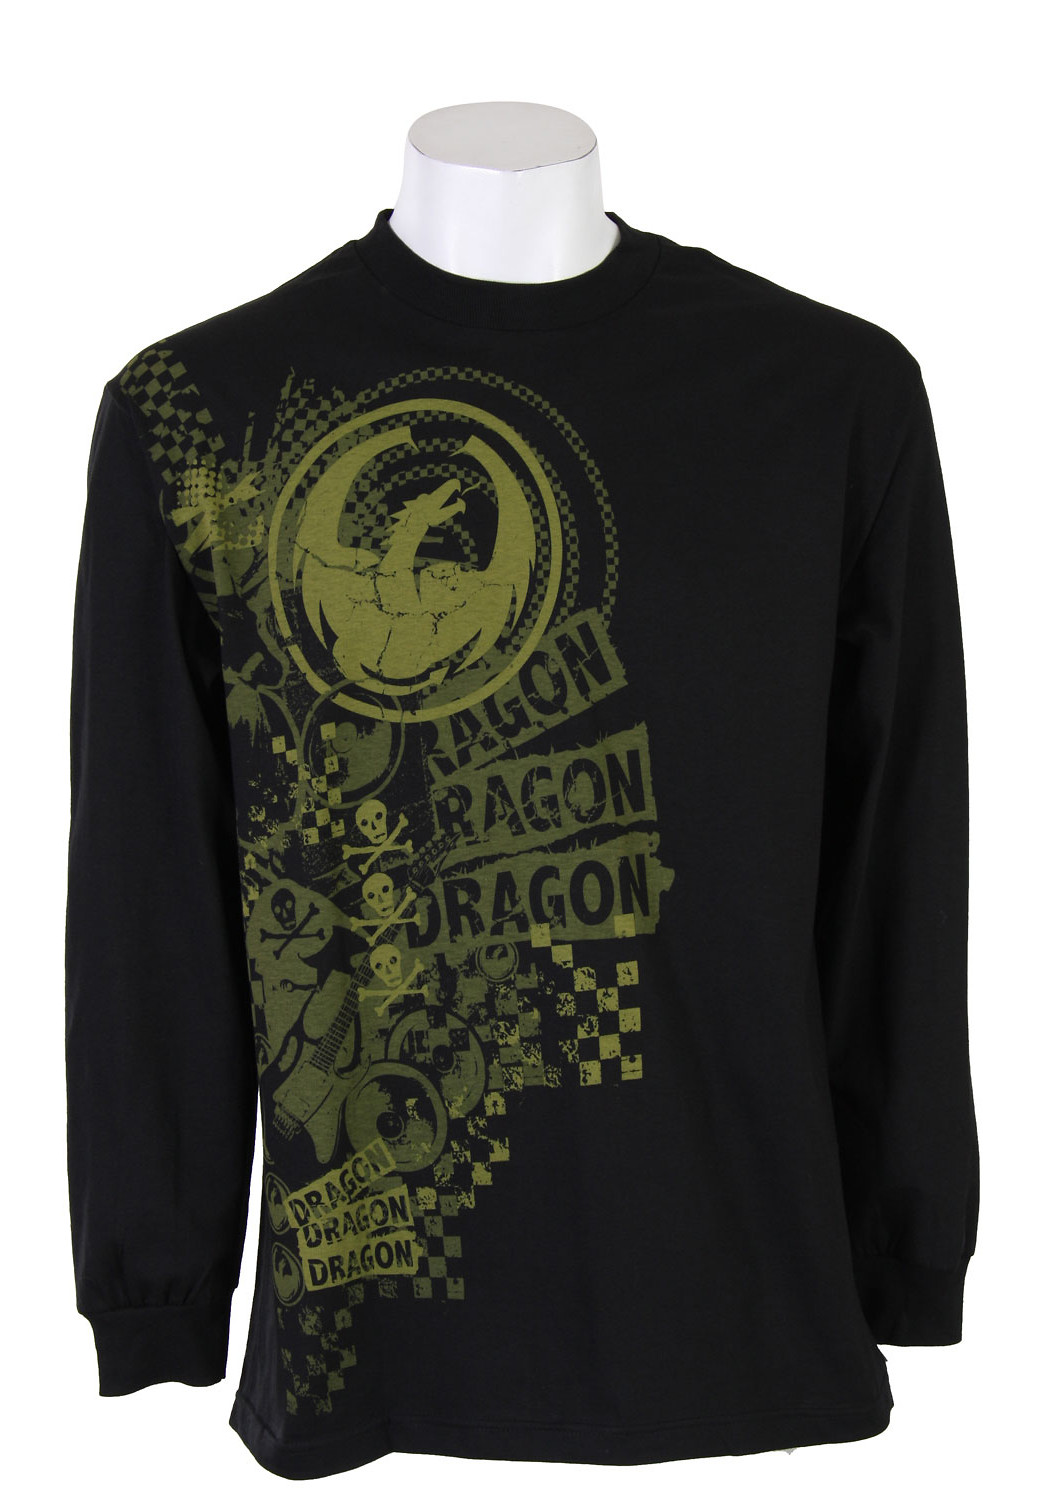 Dragon Mad Print L/S T-Shirt Shirt Black  dragon-madprint-ls-blk-10.jpg